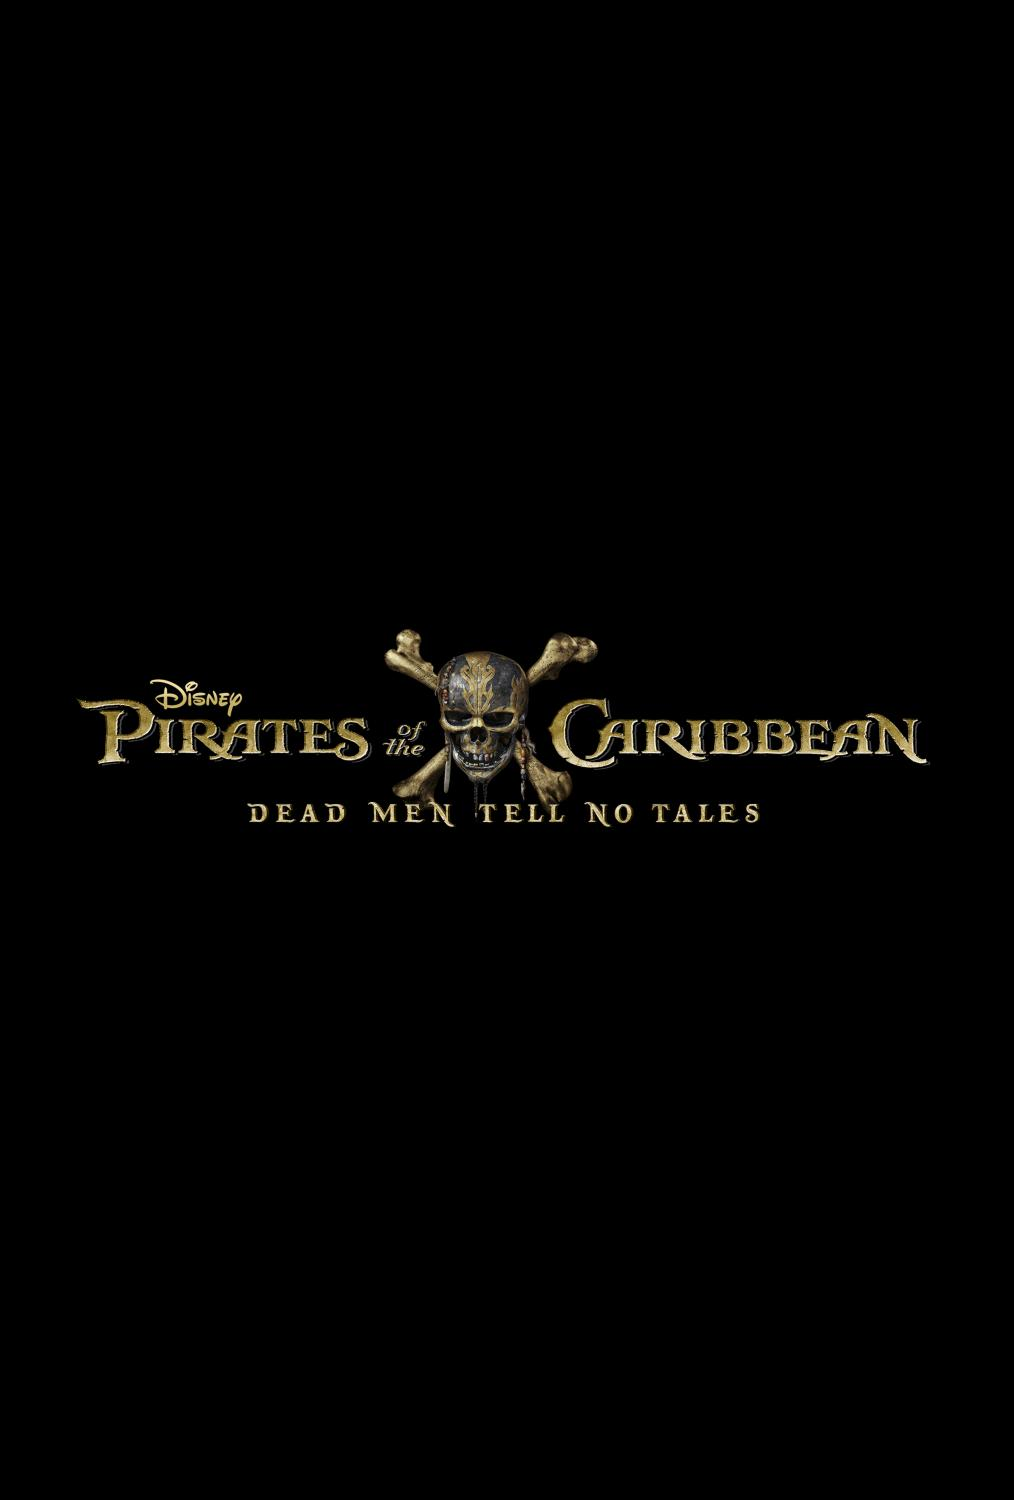 PIRATES OF THE CARIBBEAN: DEAD MEN TELL NO TALES Opens in Theaters Everywhere May 26th 2017